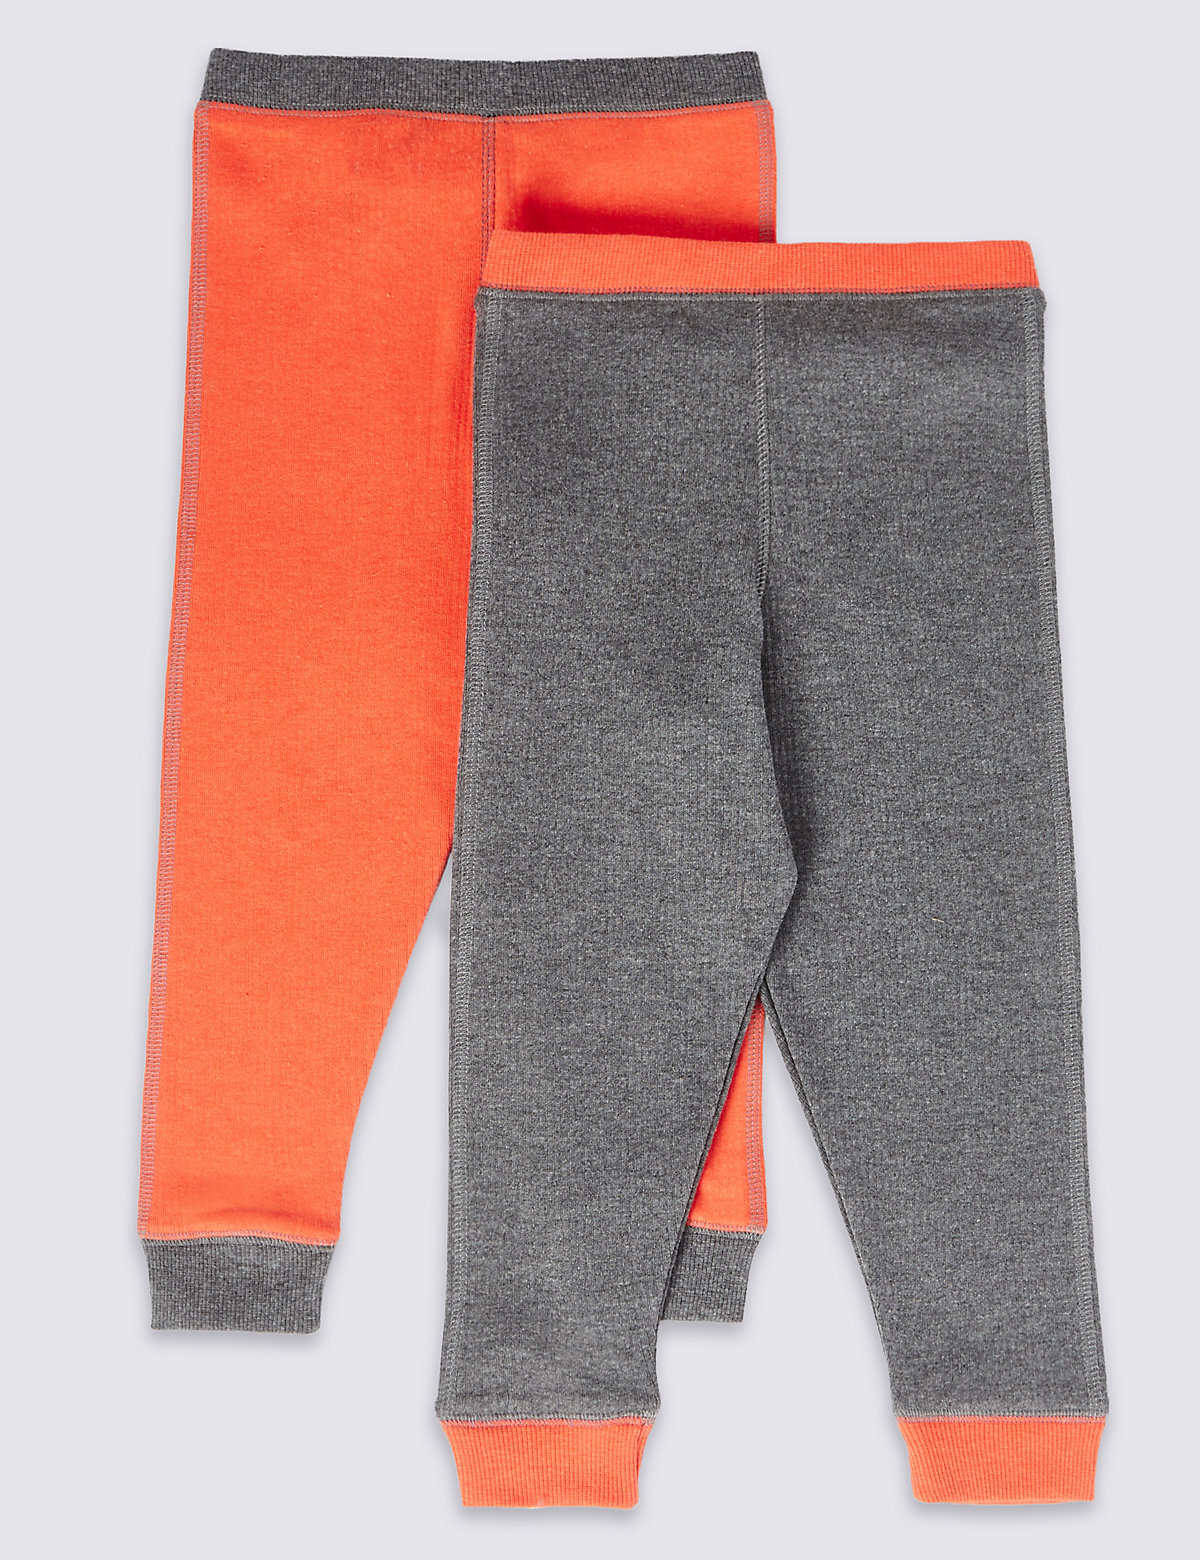 2 Pack Cuffed Hem Thermal Long Pants (18 Months - 16 Years).